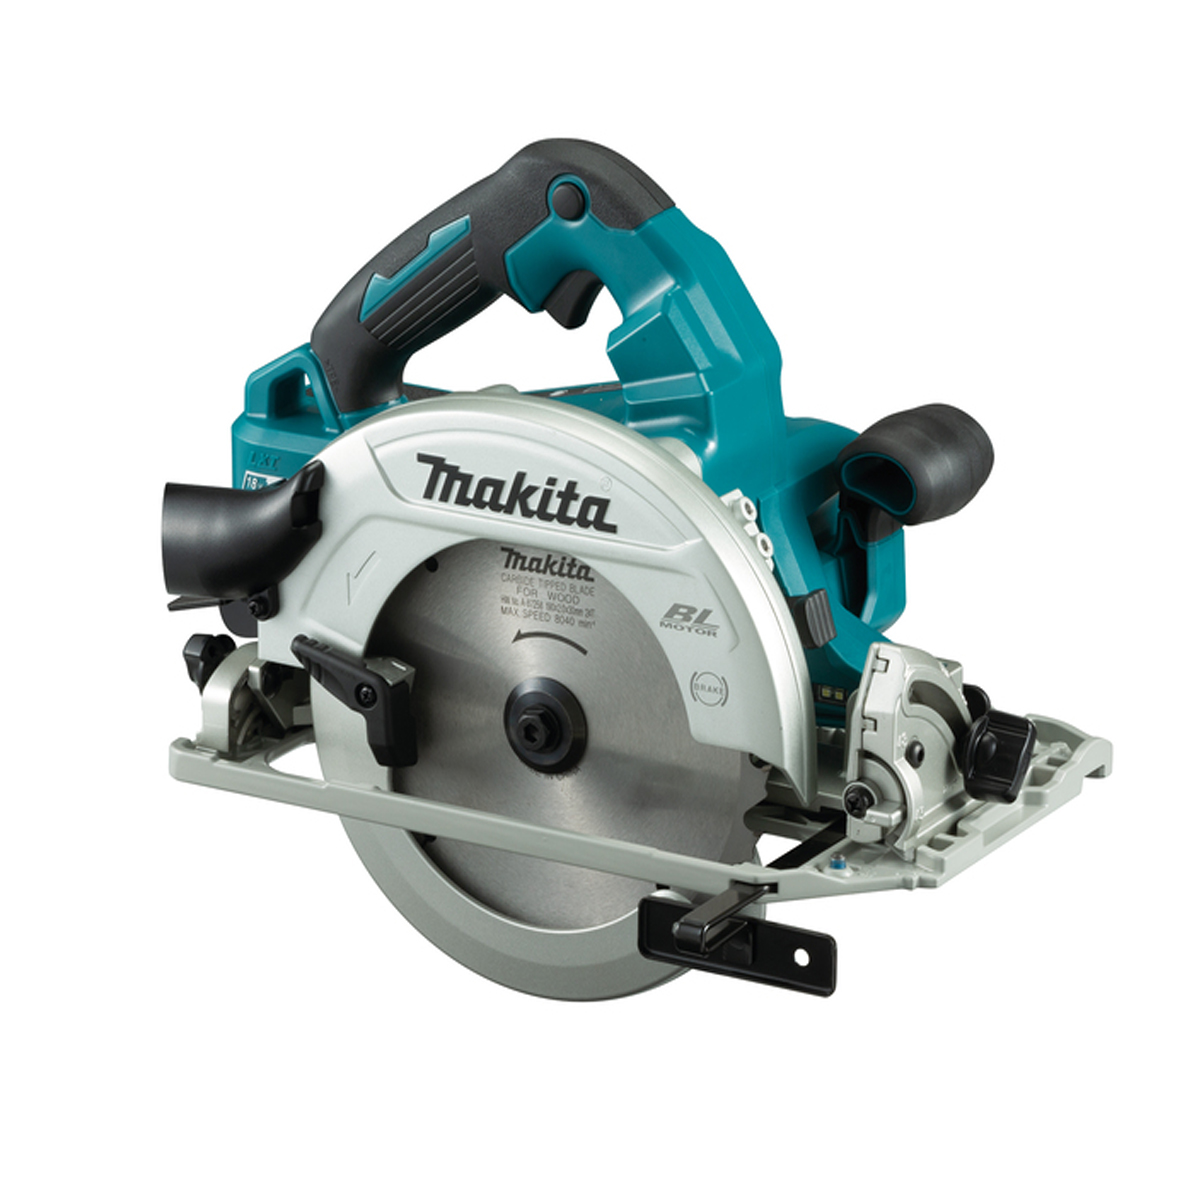 Makita DHS782 36V (Twin 18V) LXT 190mm Brushless Circular Saw - Body Only